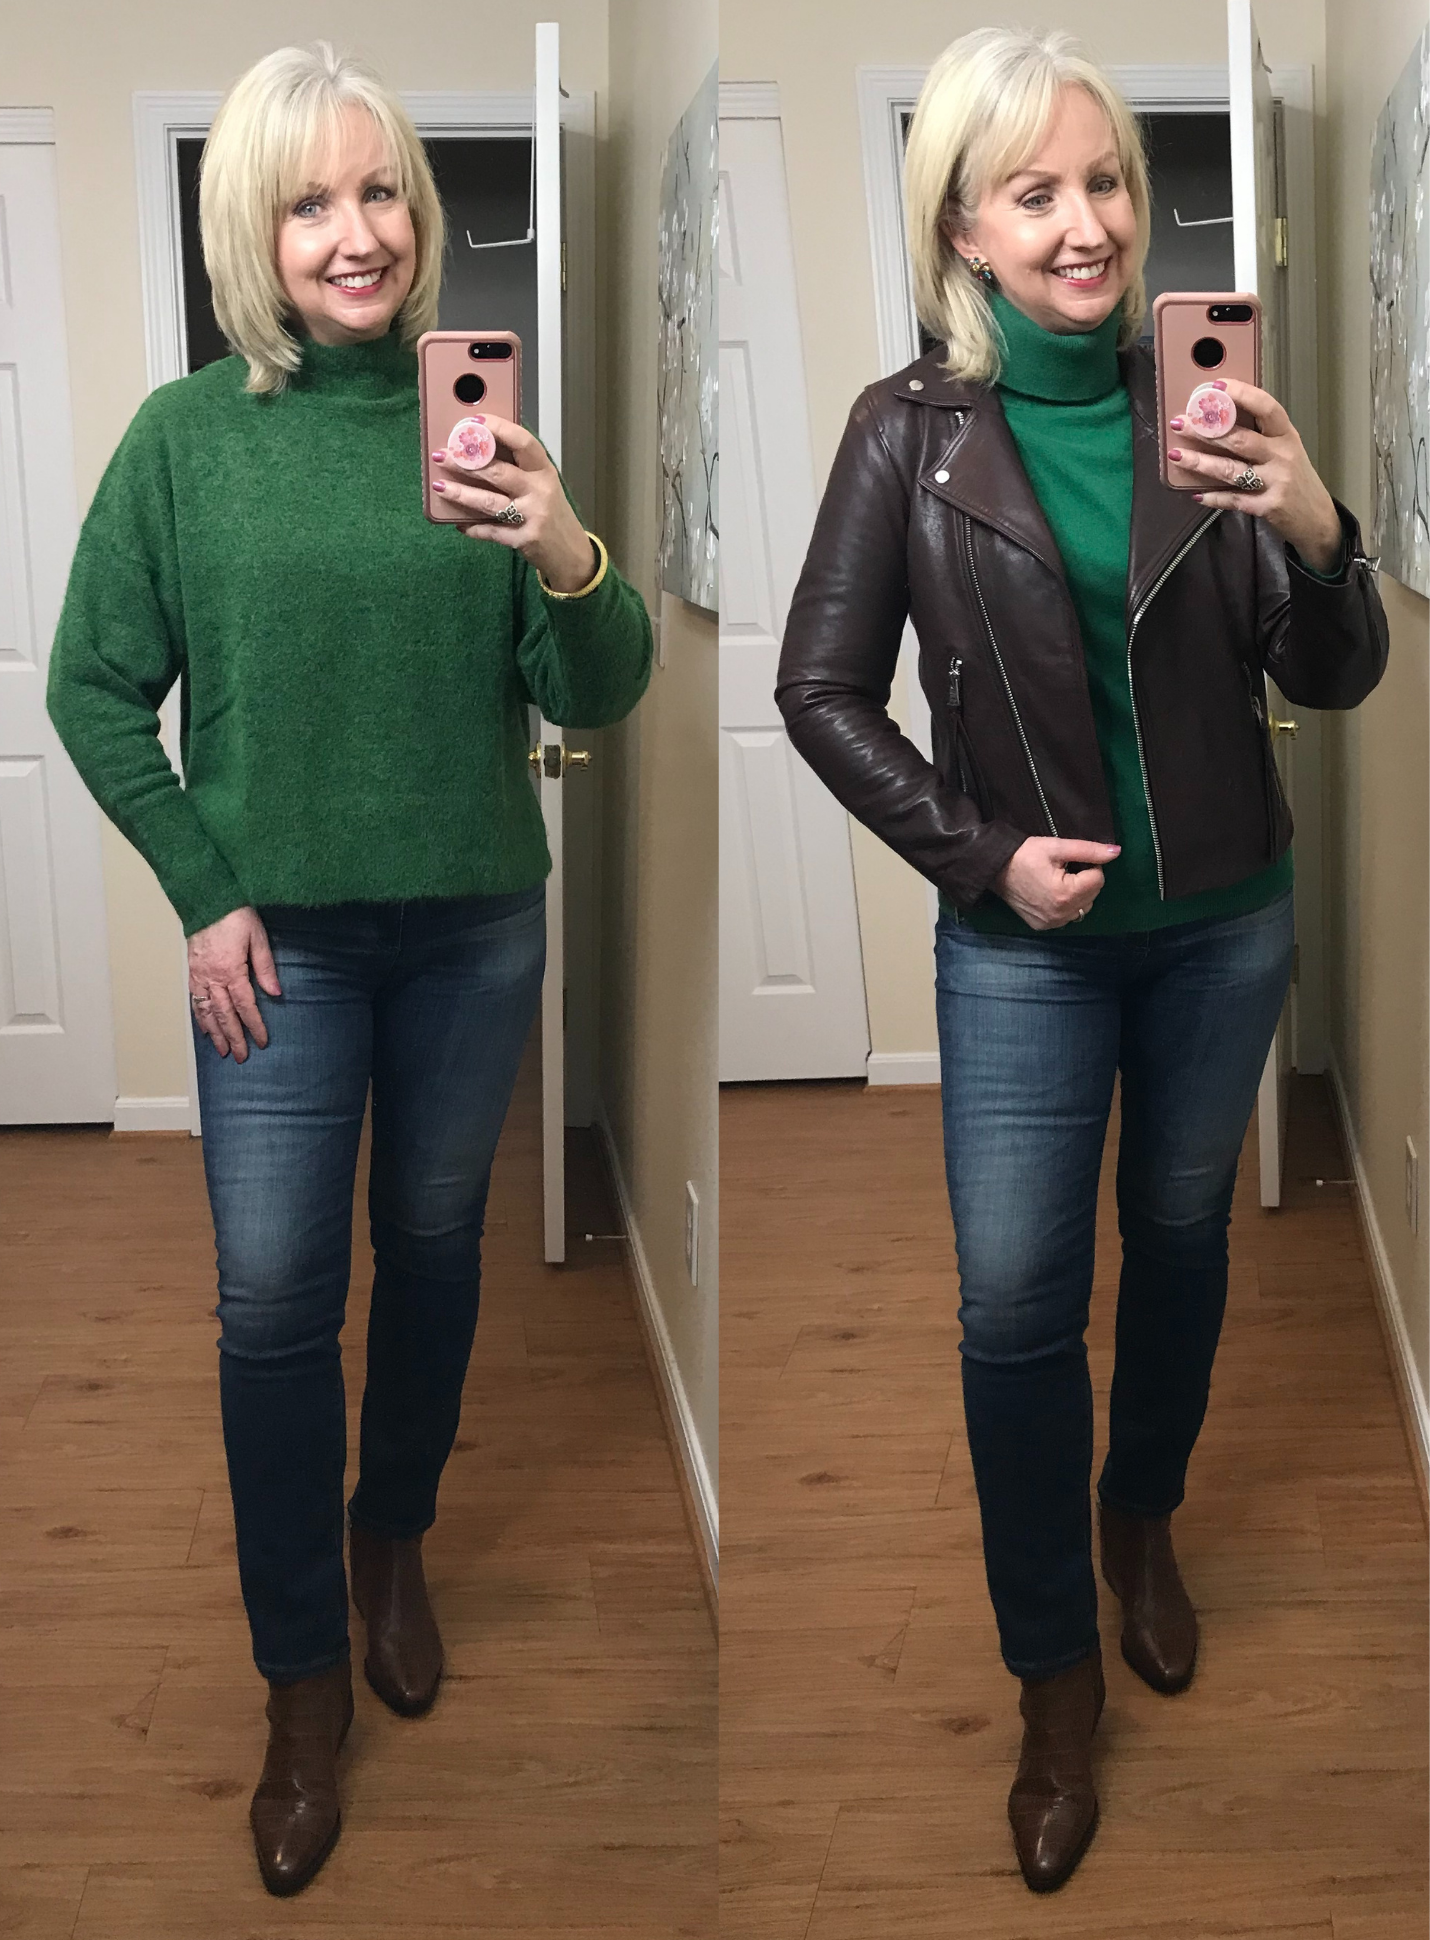 How I Dressed for My Doctor's Visit